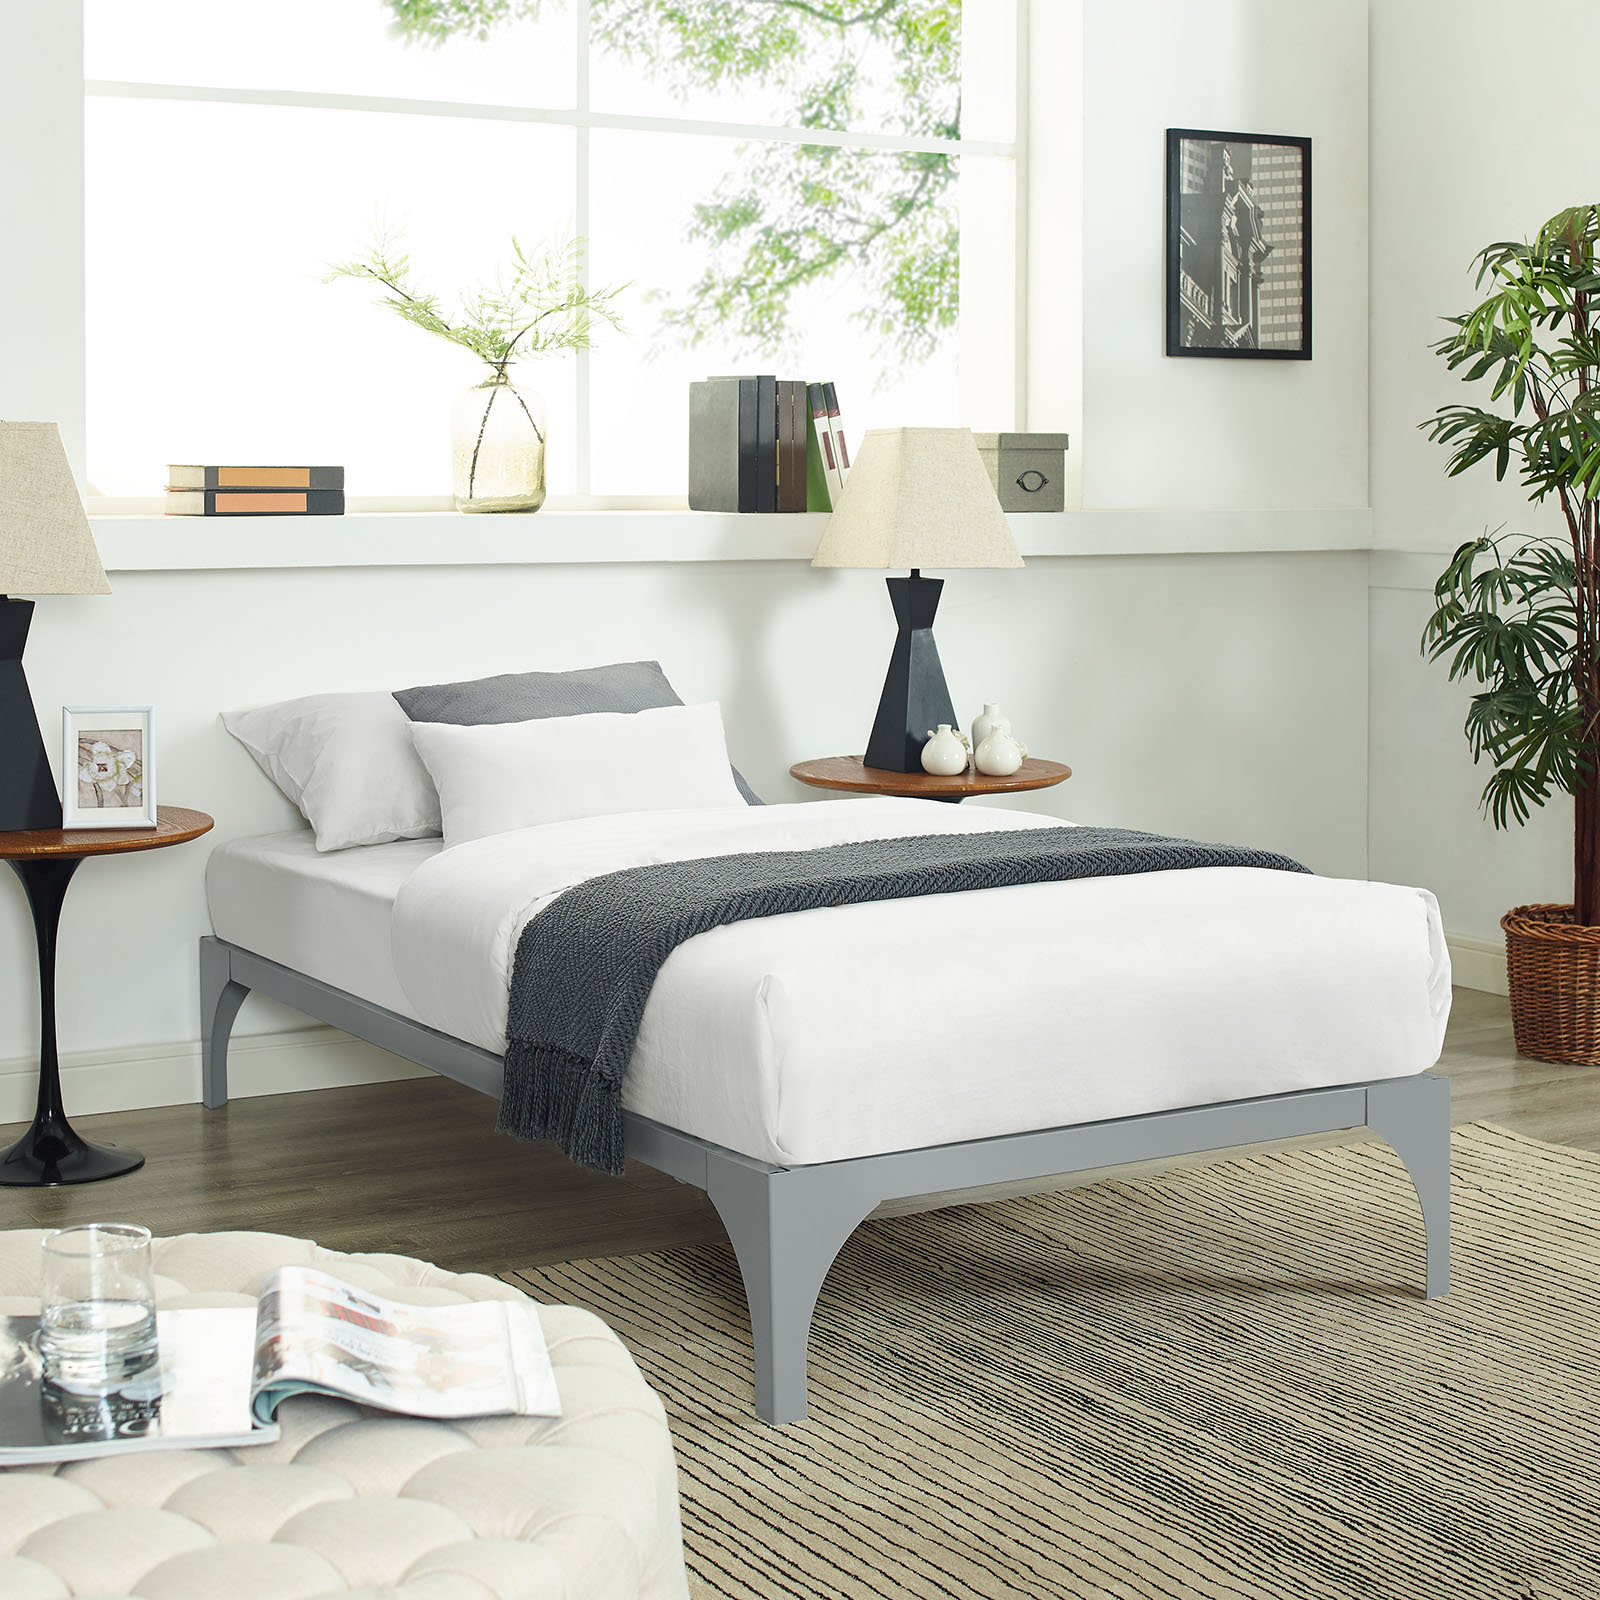 Modway Ollie Steel Platform Bed Frame, Multiple Sizes and Colors